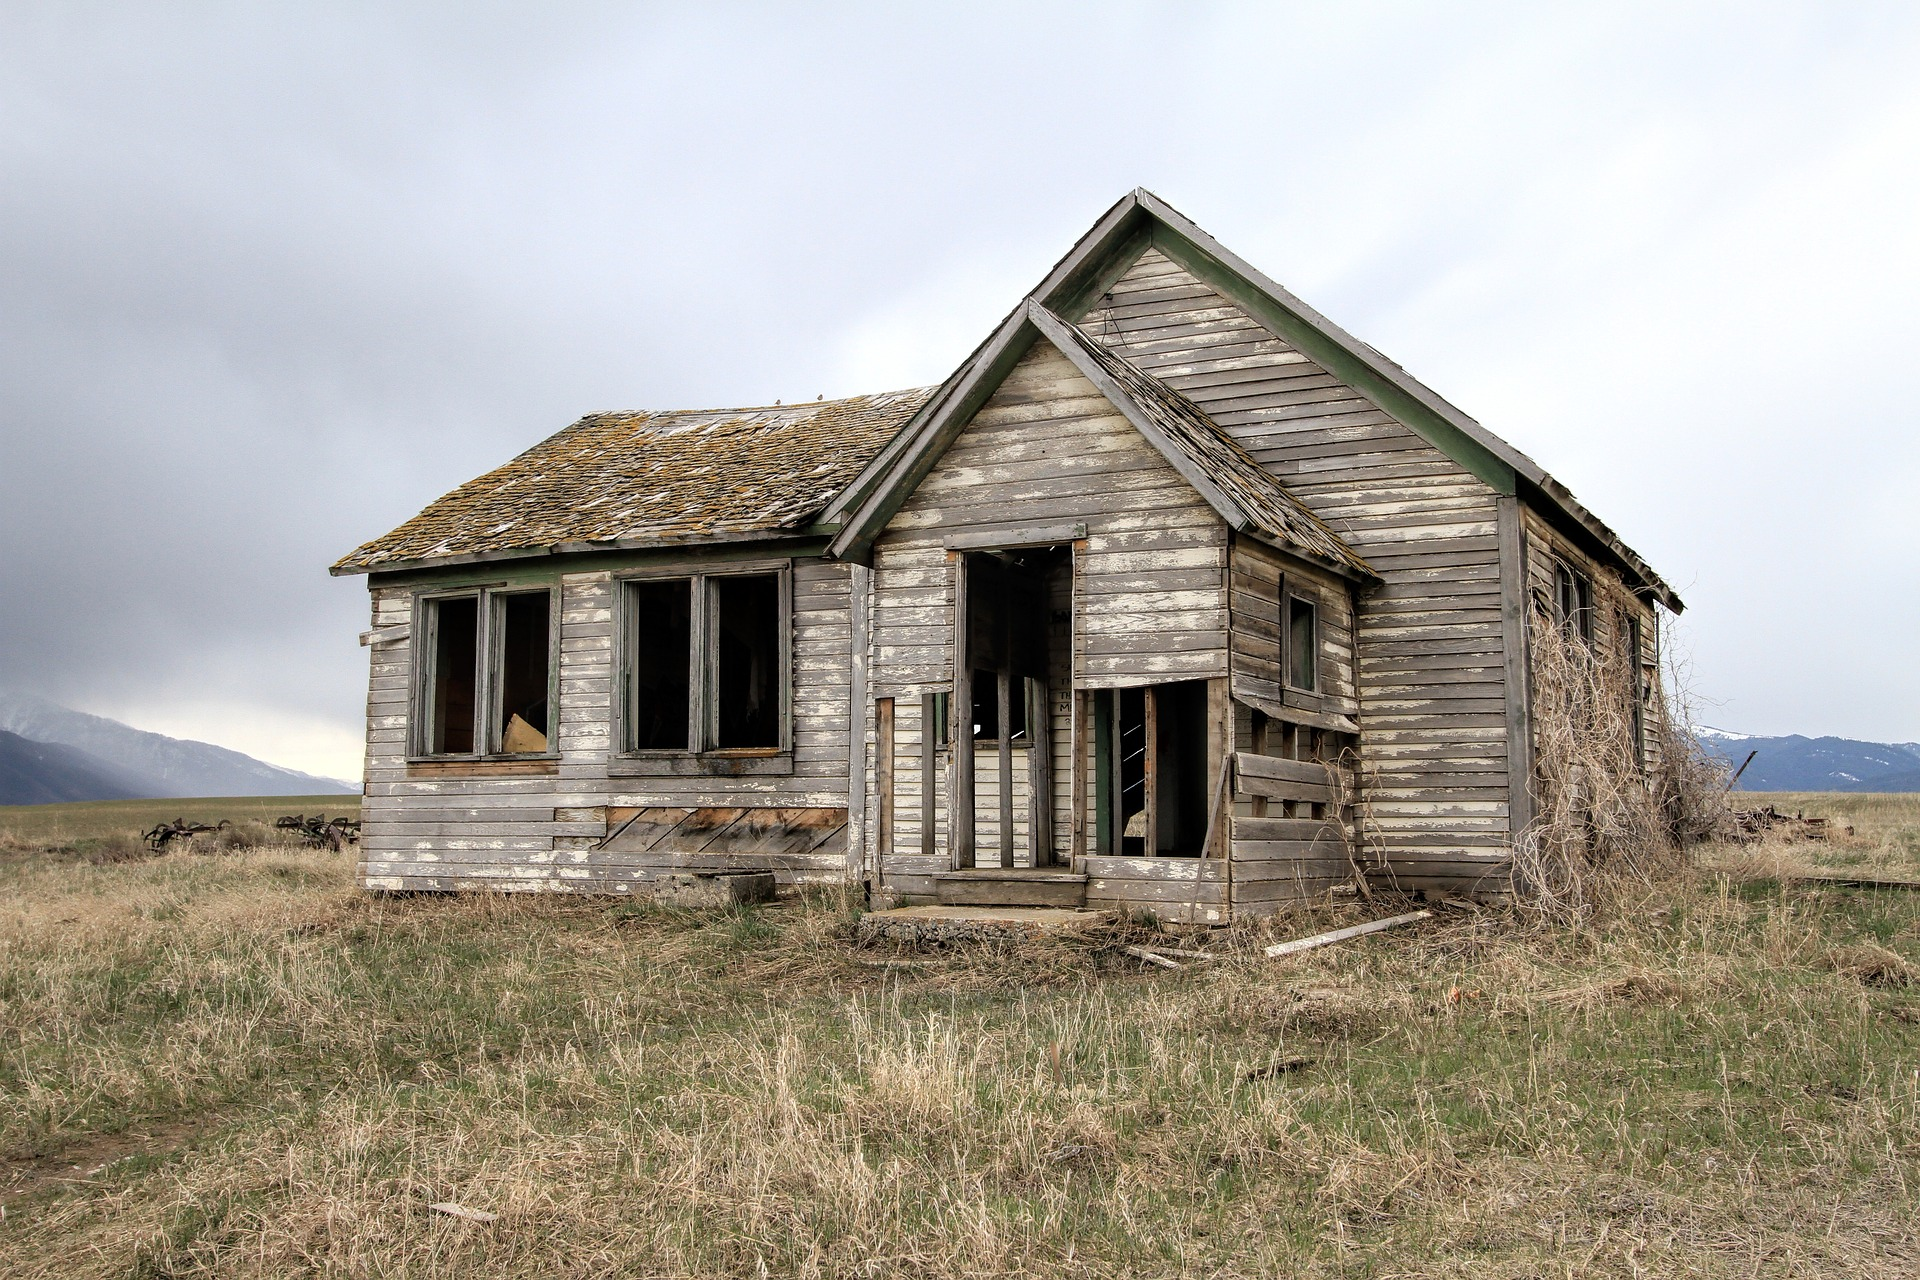 Would you renovate, or abandon?